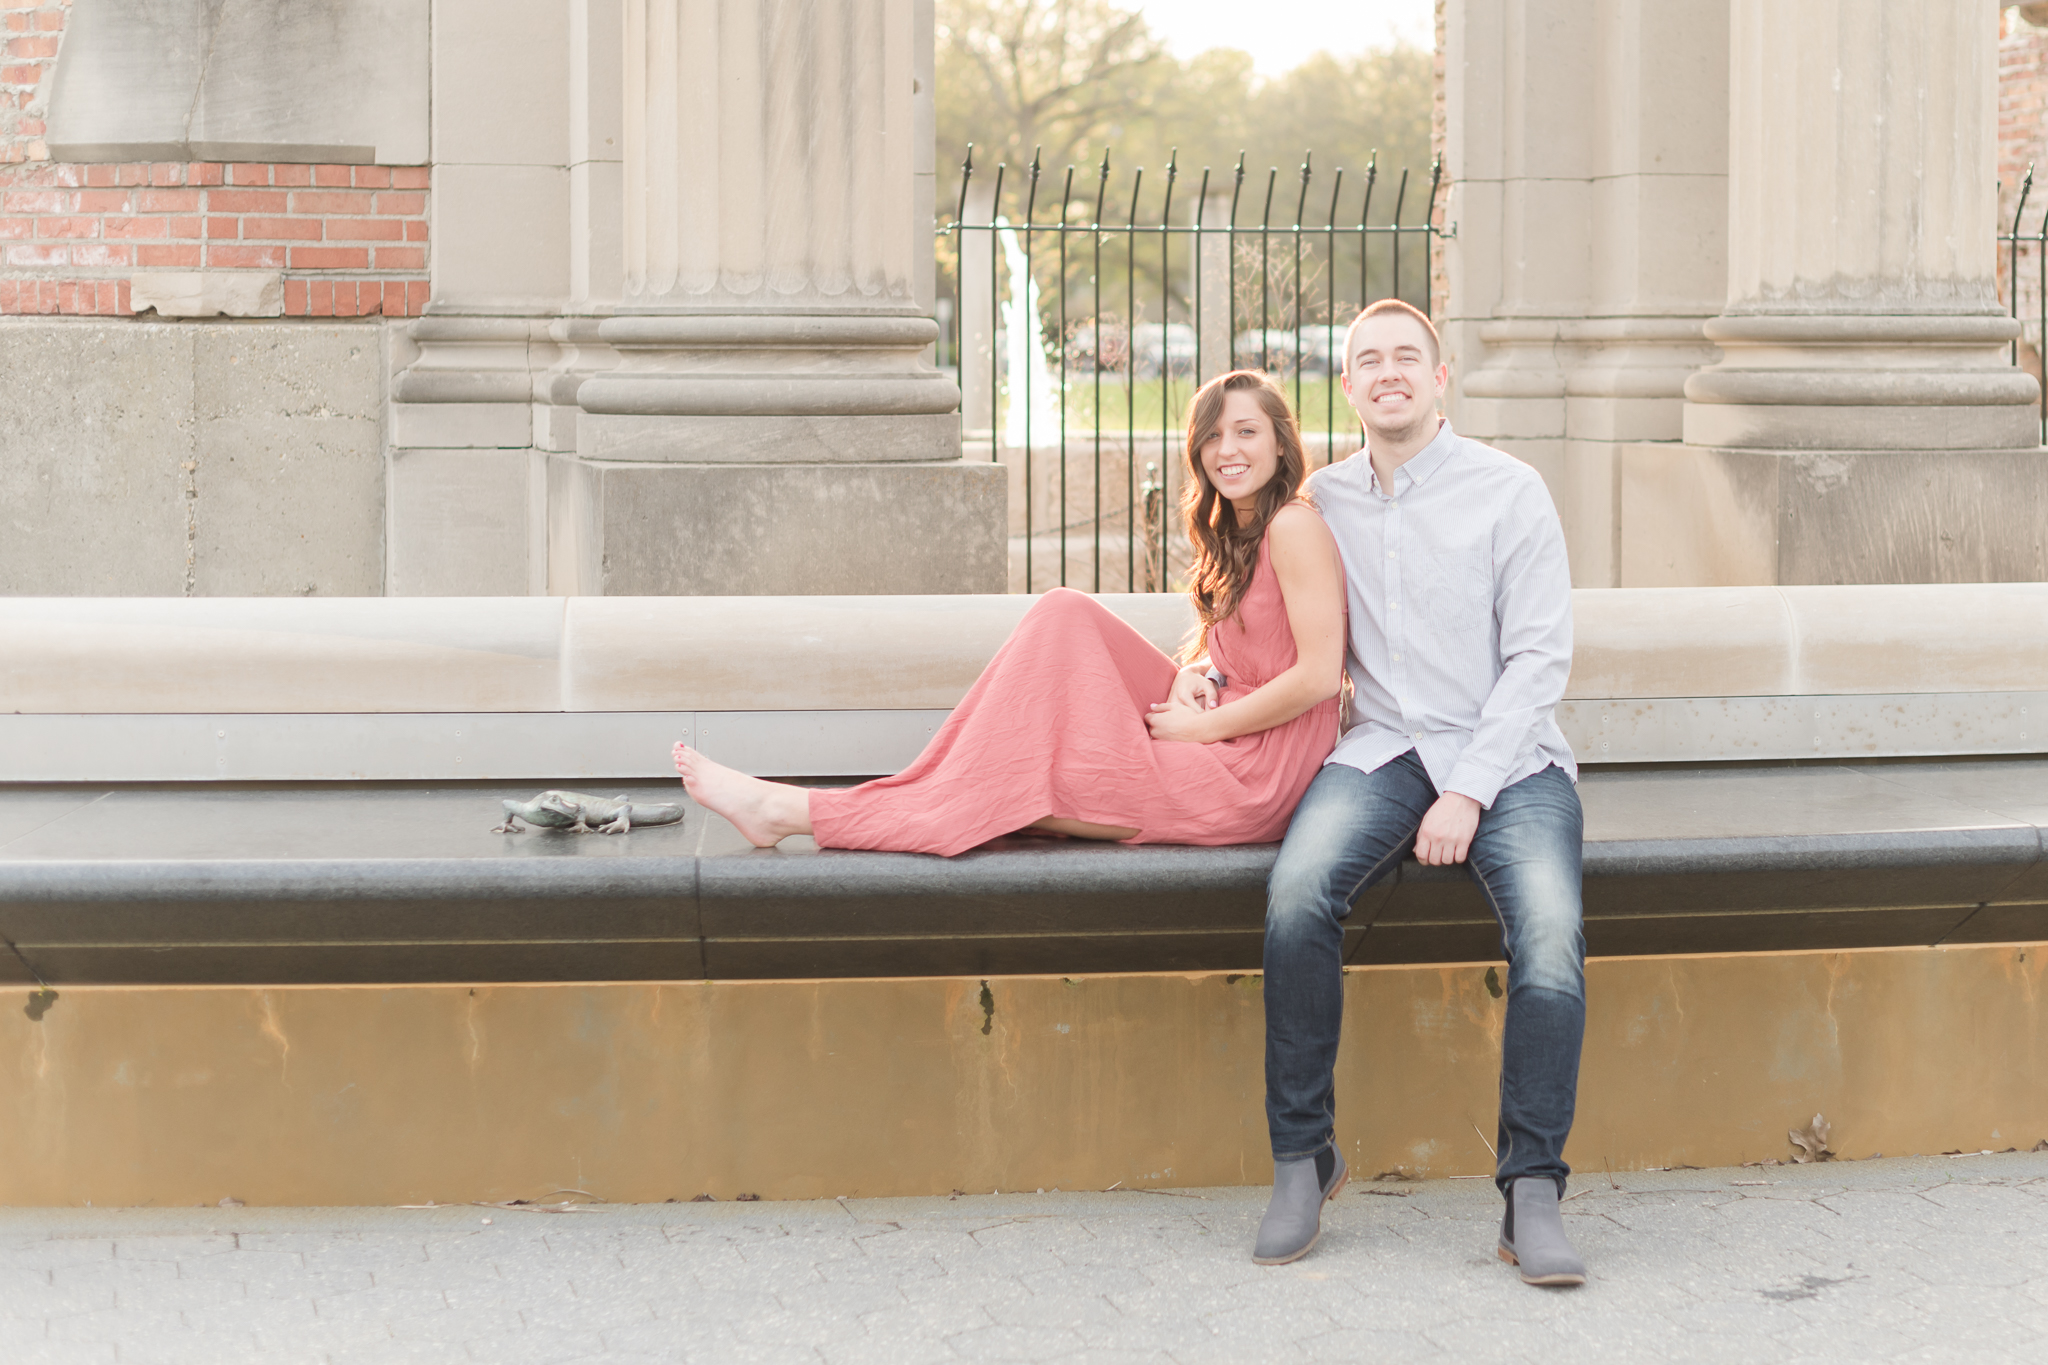 Holliday Park Engagement Session Indianapolis Wedding Photographer-13.jpg